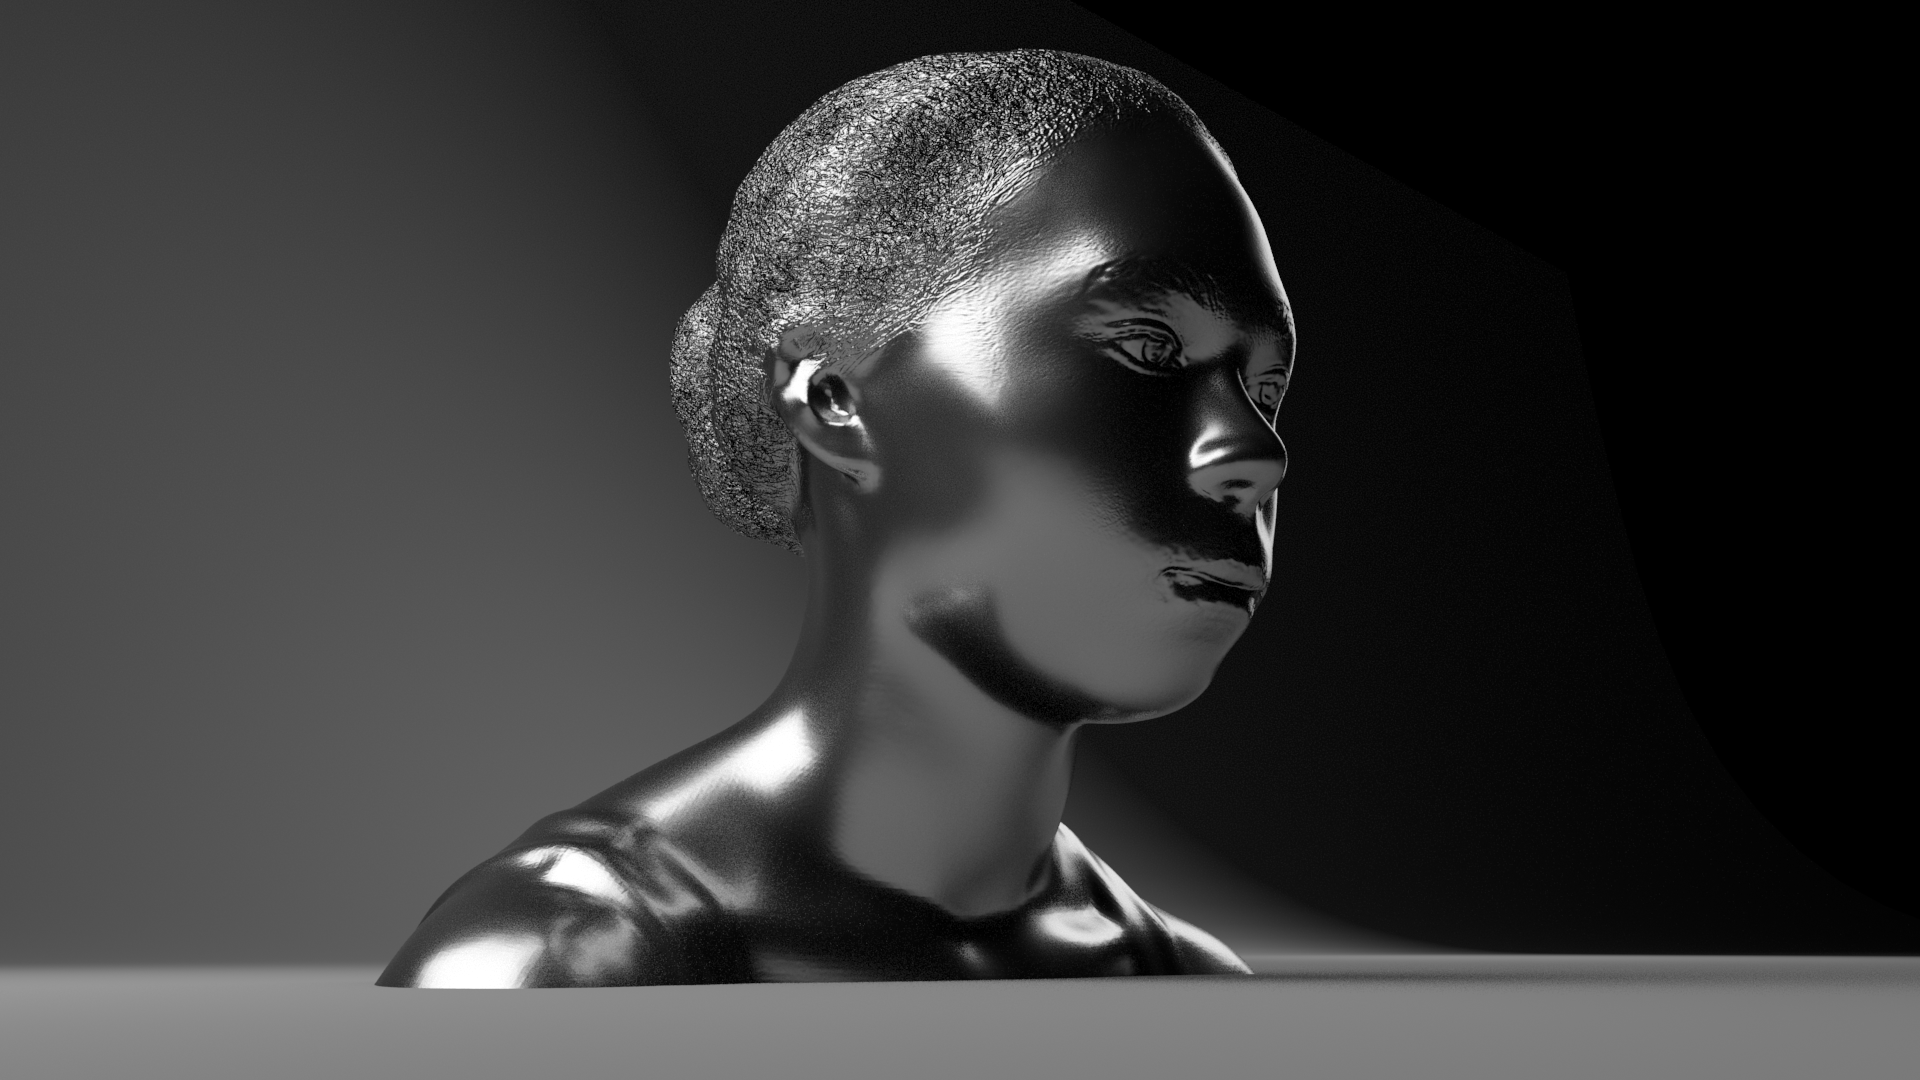 Head Modeling Study (Sculpting)